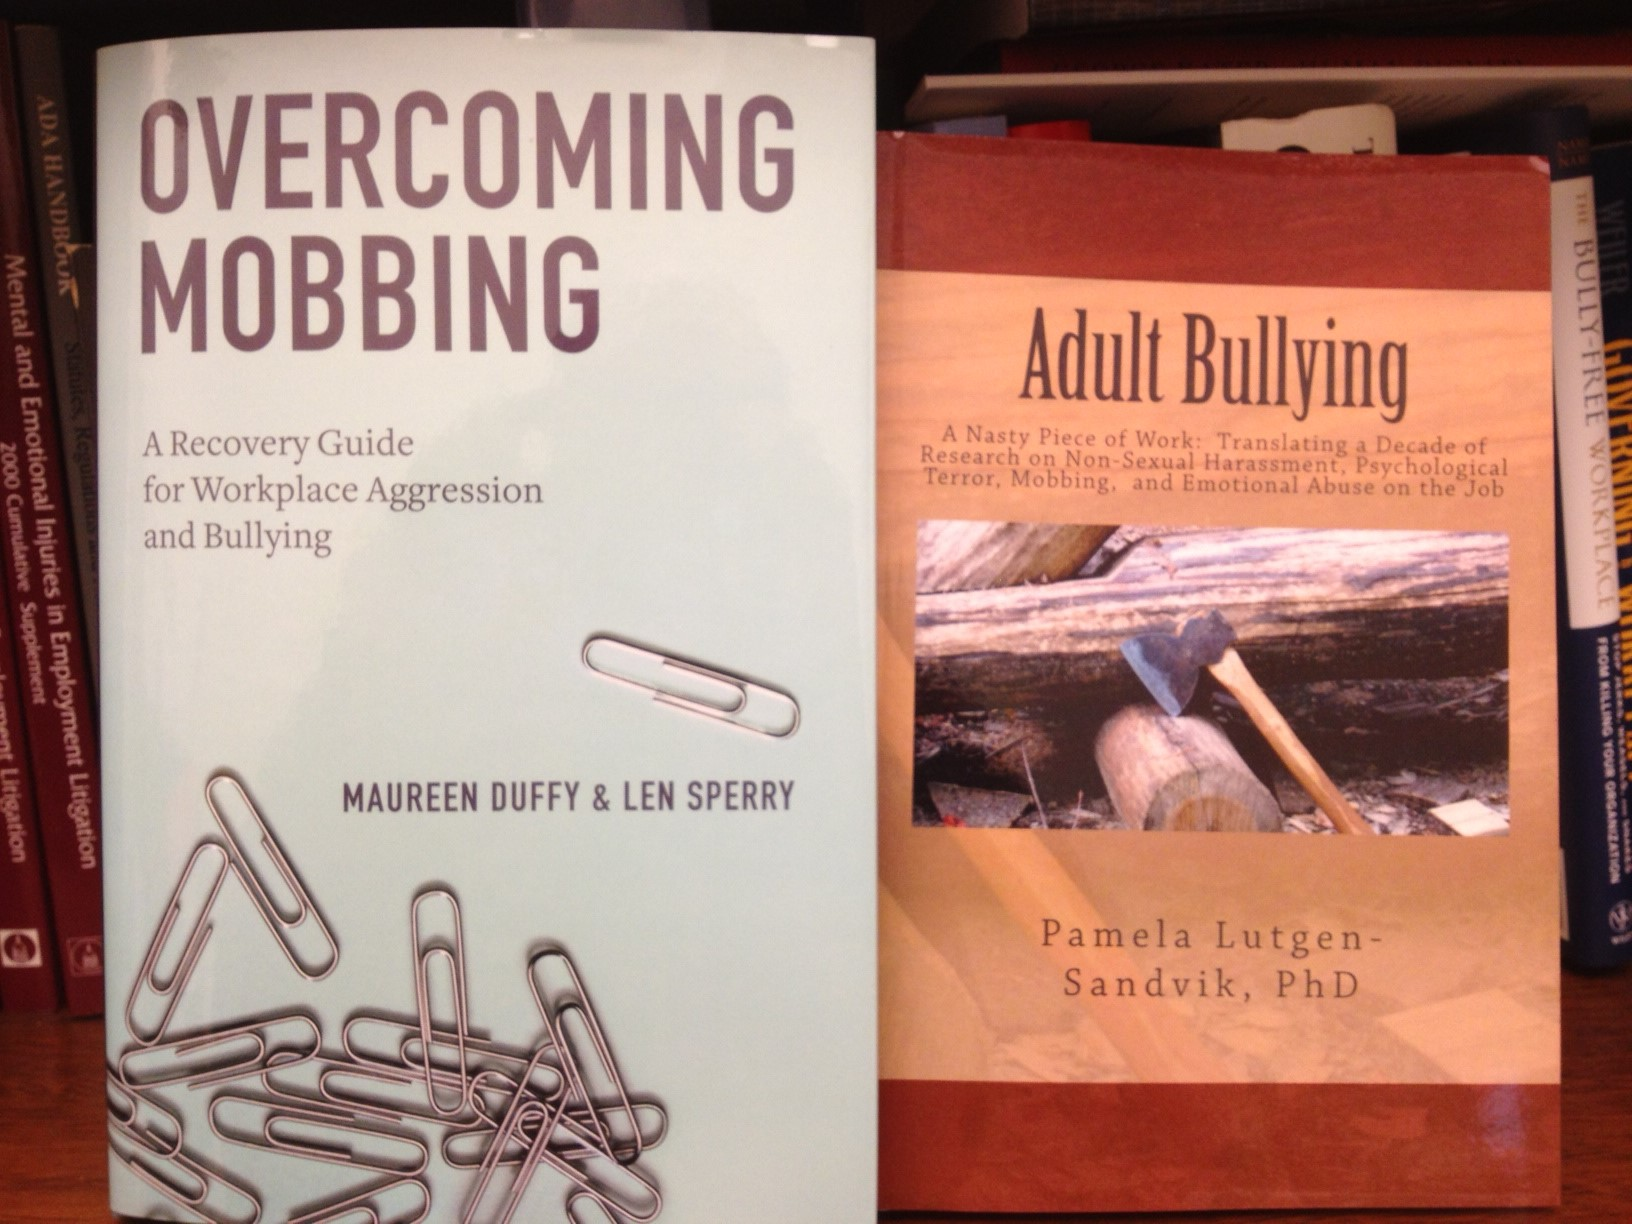 review related literature about bullying